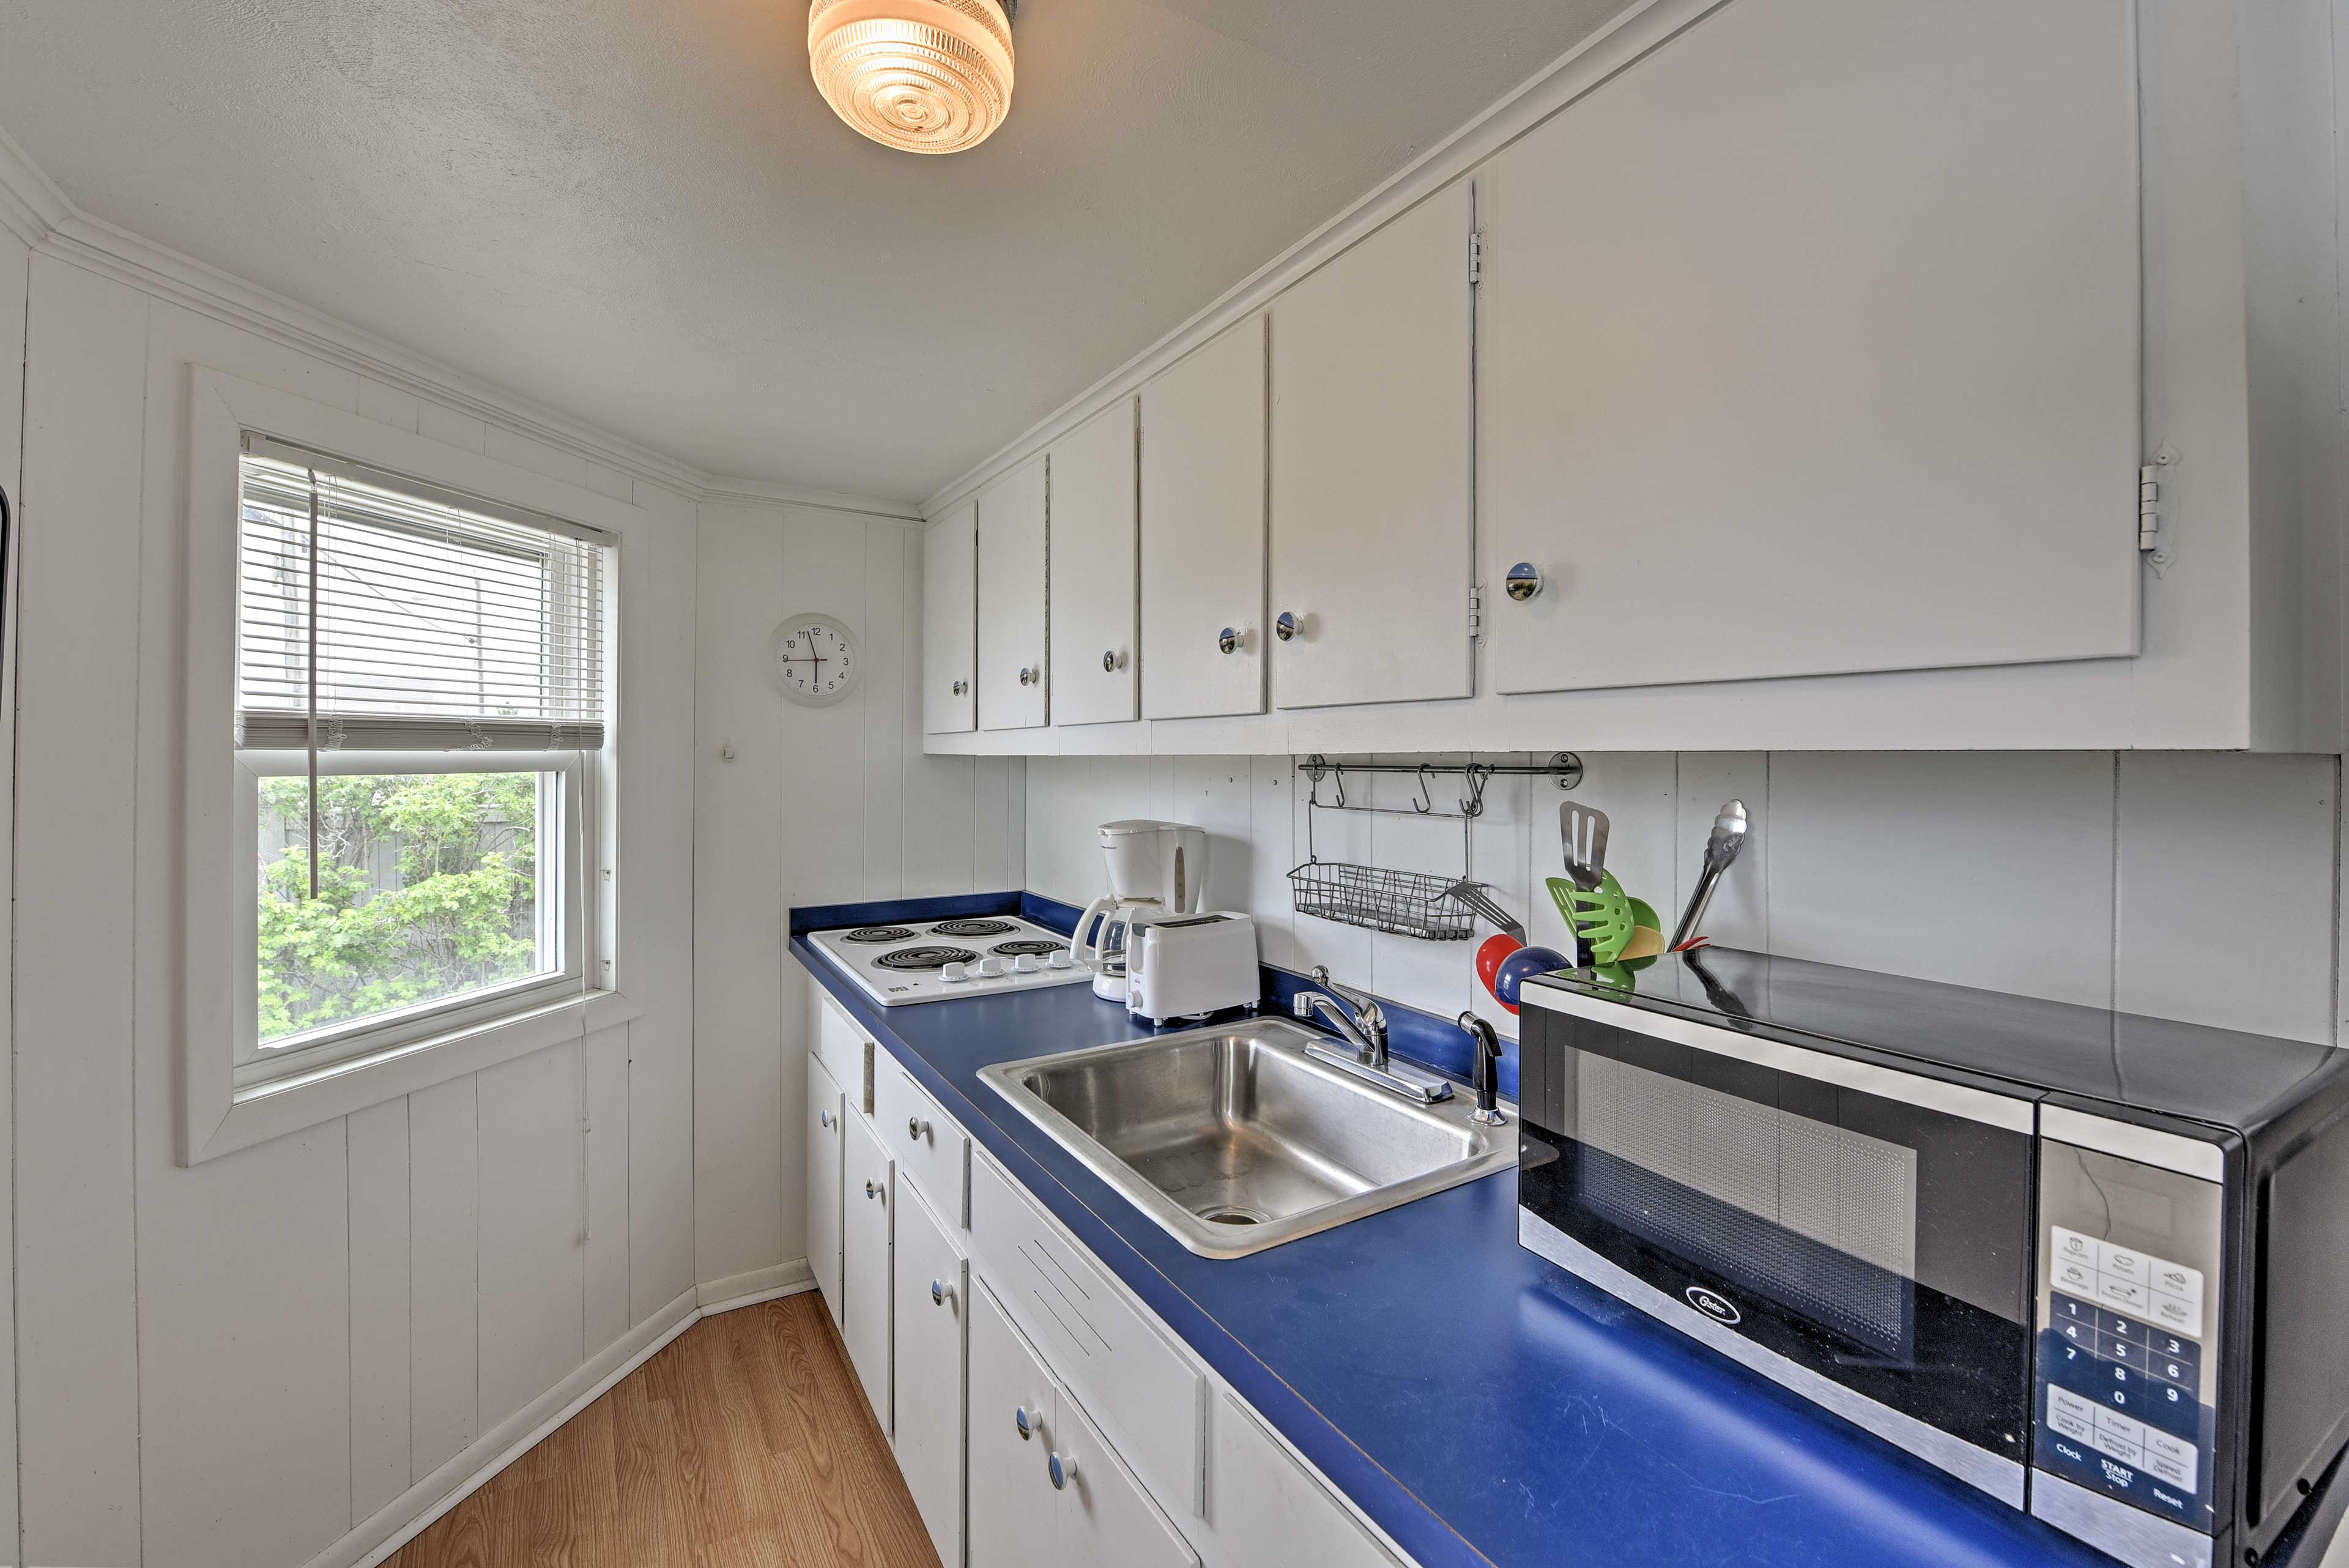 This kitchenette comes well equipped with everything you need to prepare meals.